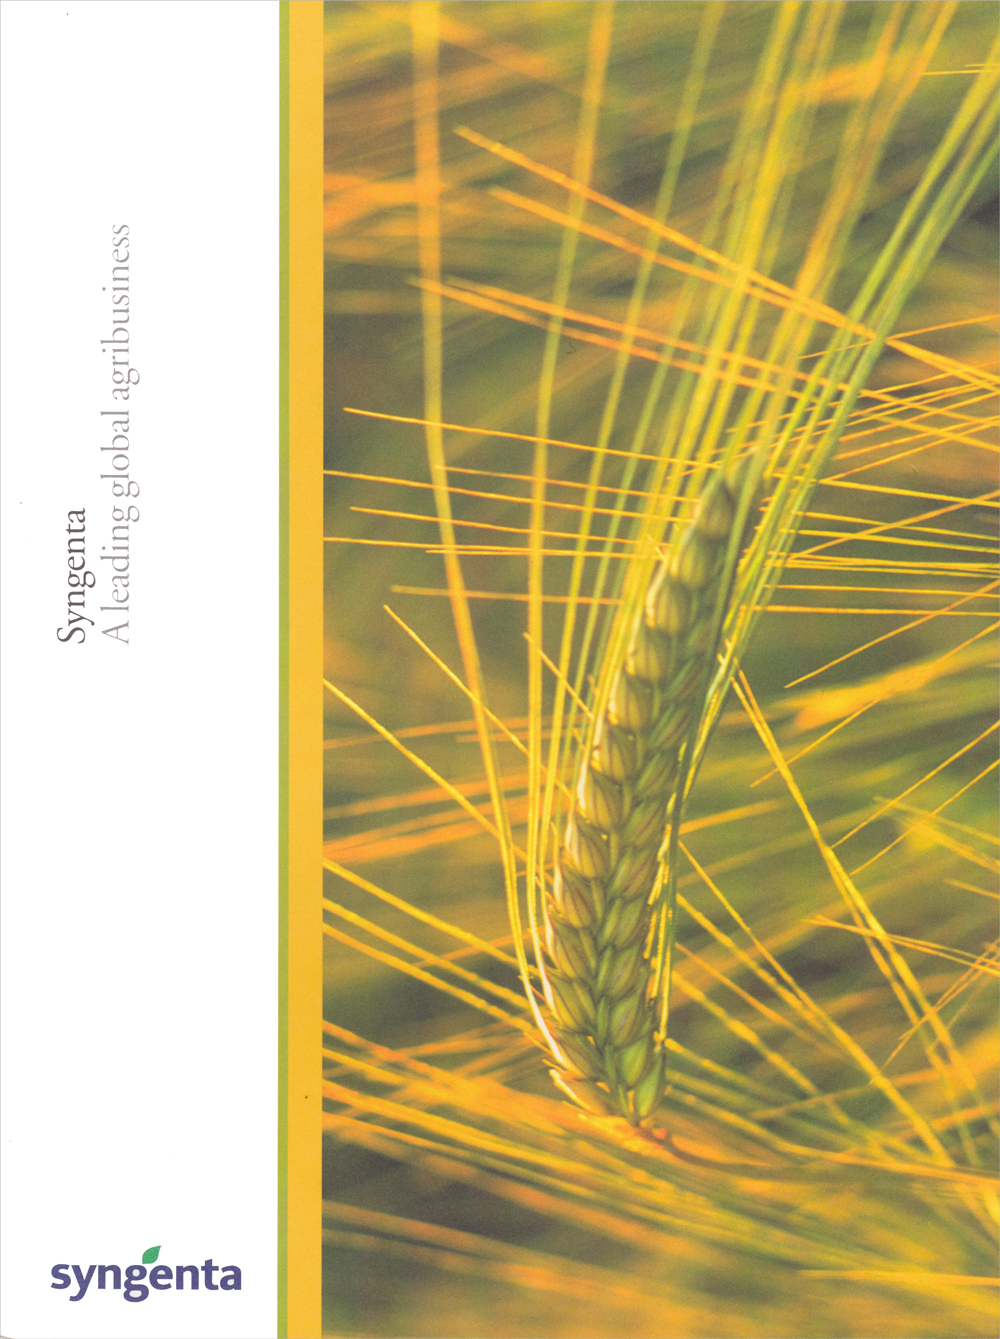 Syngenta Launch Brochure